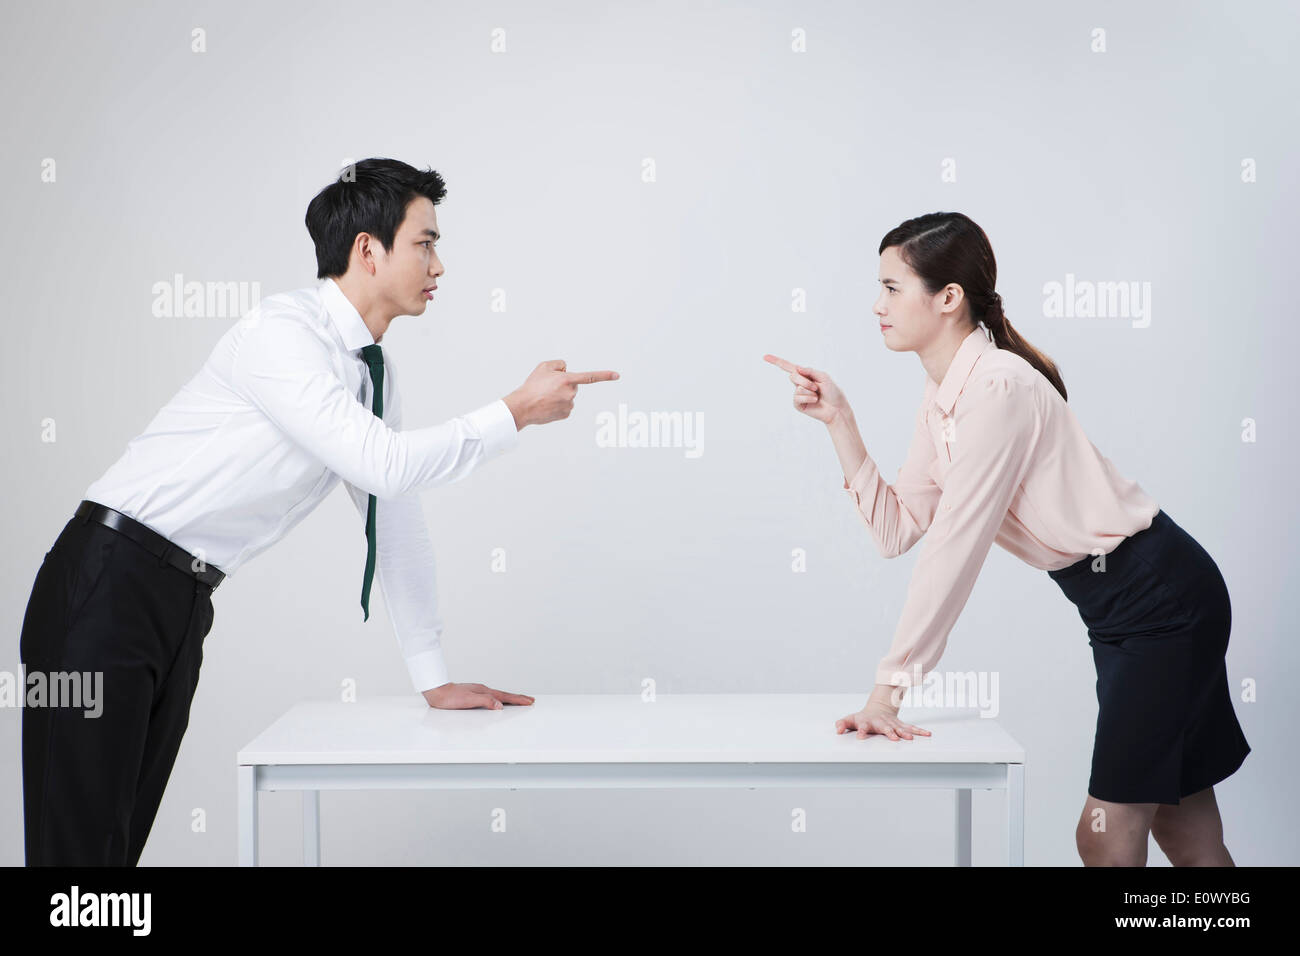 two business people arguing Stock Photo: 69411764 - Alamy